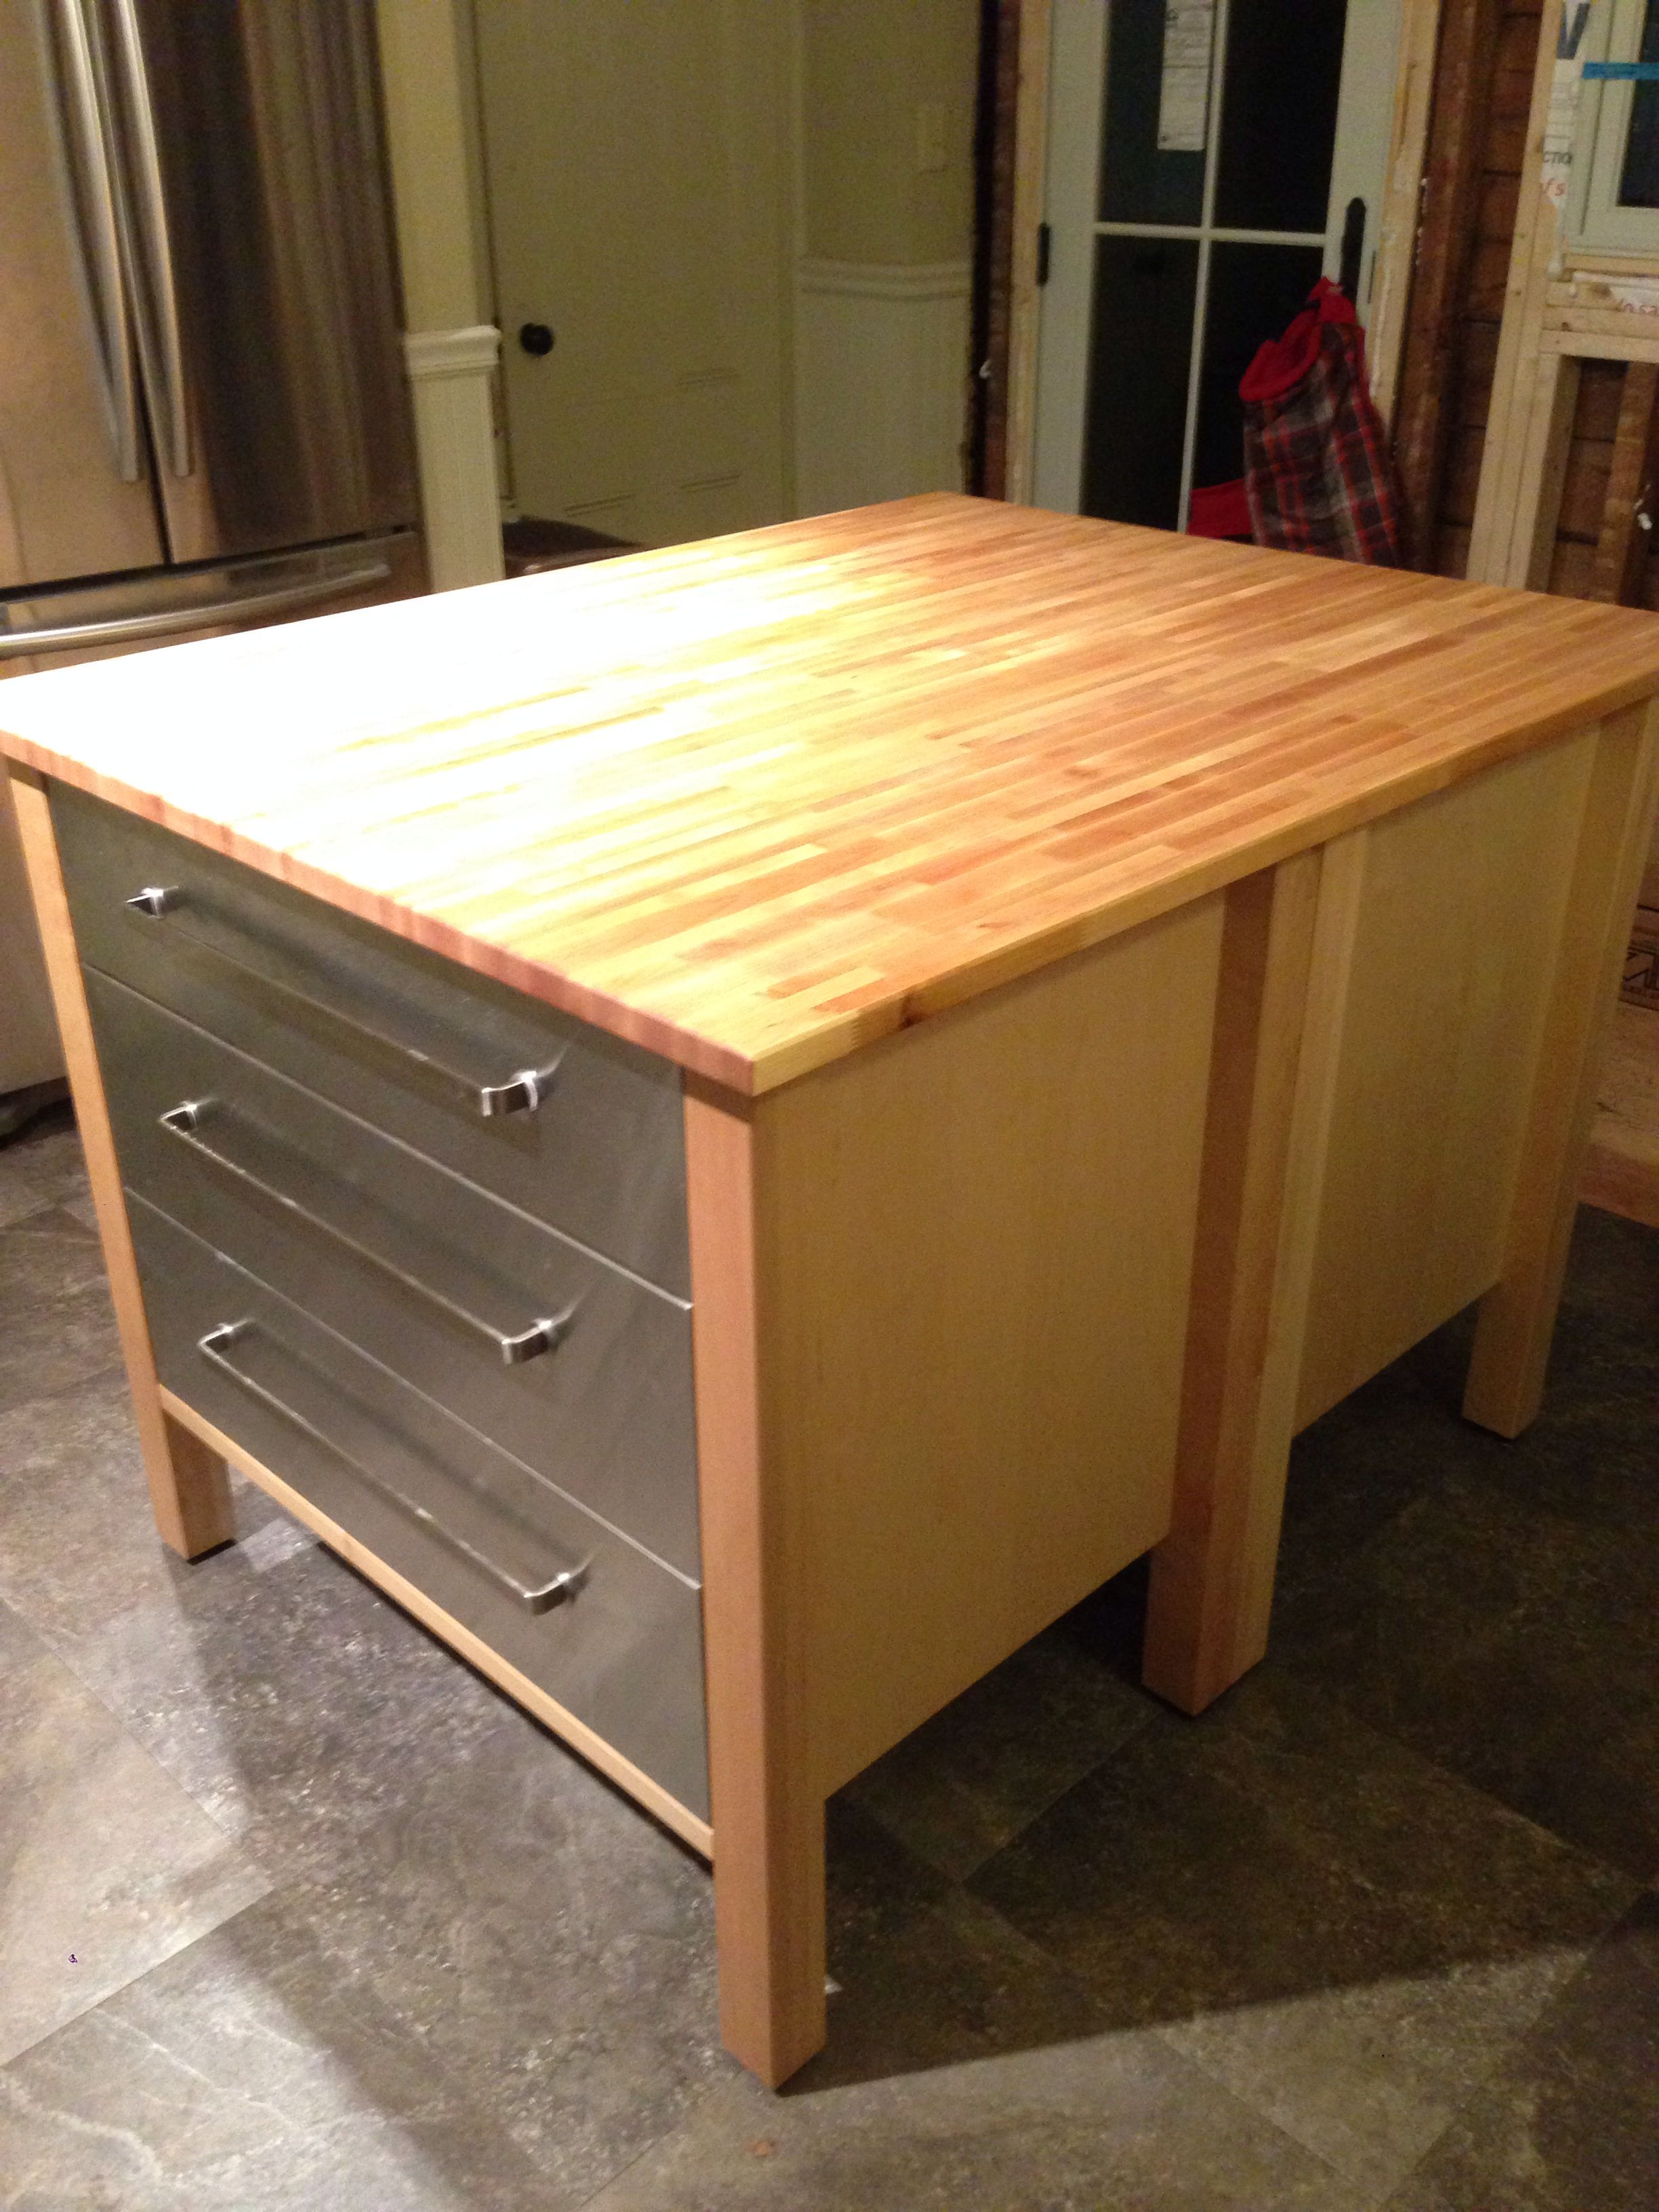 Ikea Kitchen Island Hack Two Varde 3 Drawer Cabinets Back To Back With A Big Piece Of Ikea Butc Butcher Block Island Kitchen Ikea Island Kitchen Remodel Small